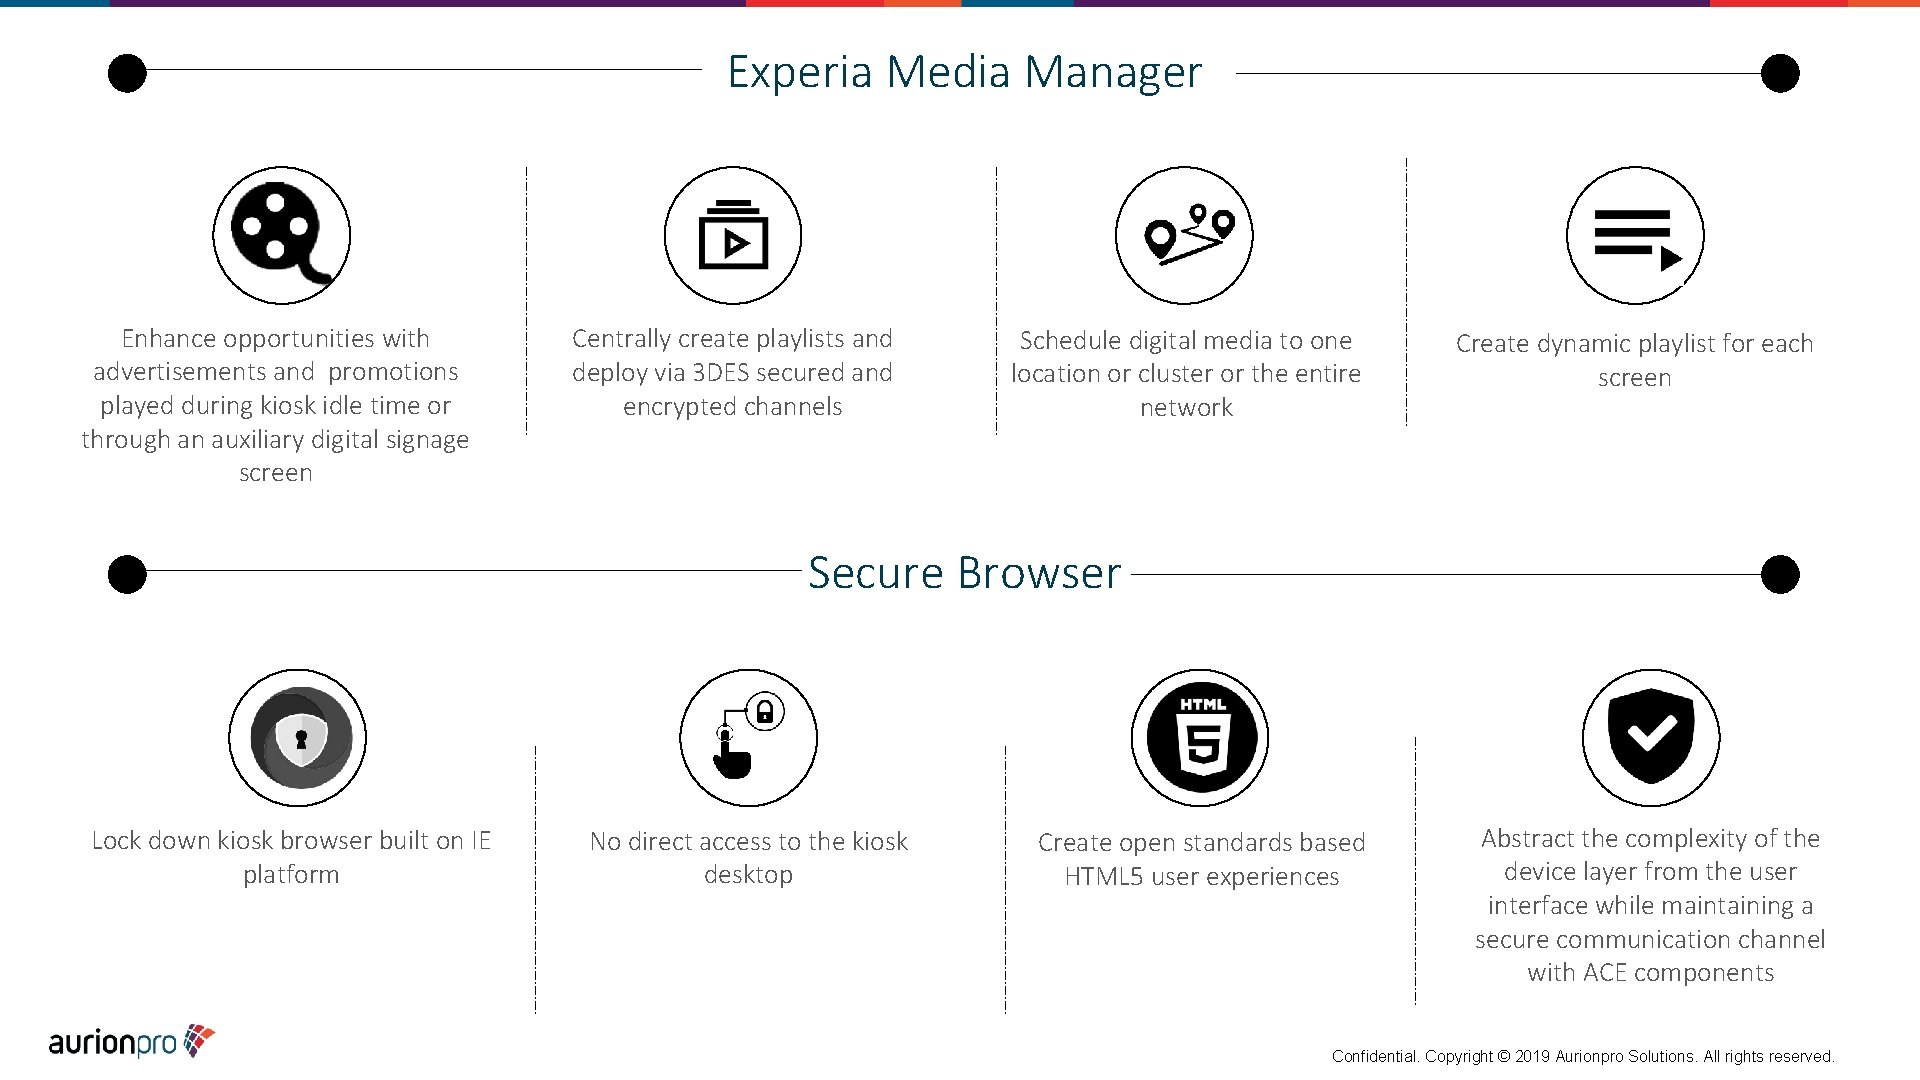 Experia Media Manager Enhance opportunities with advertisements and promotions played during kiosk idle time